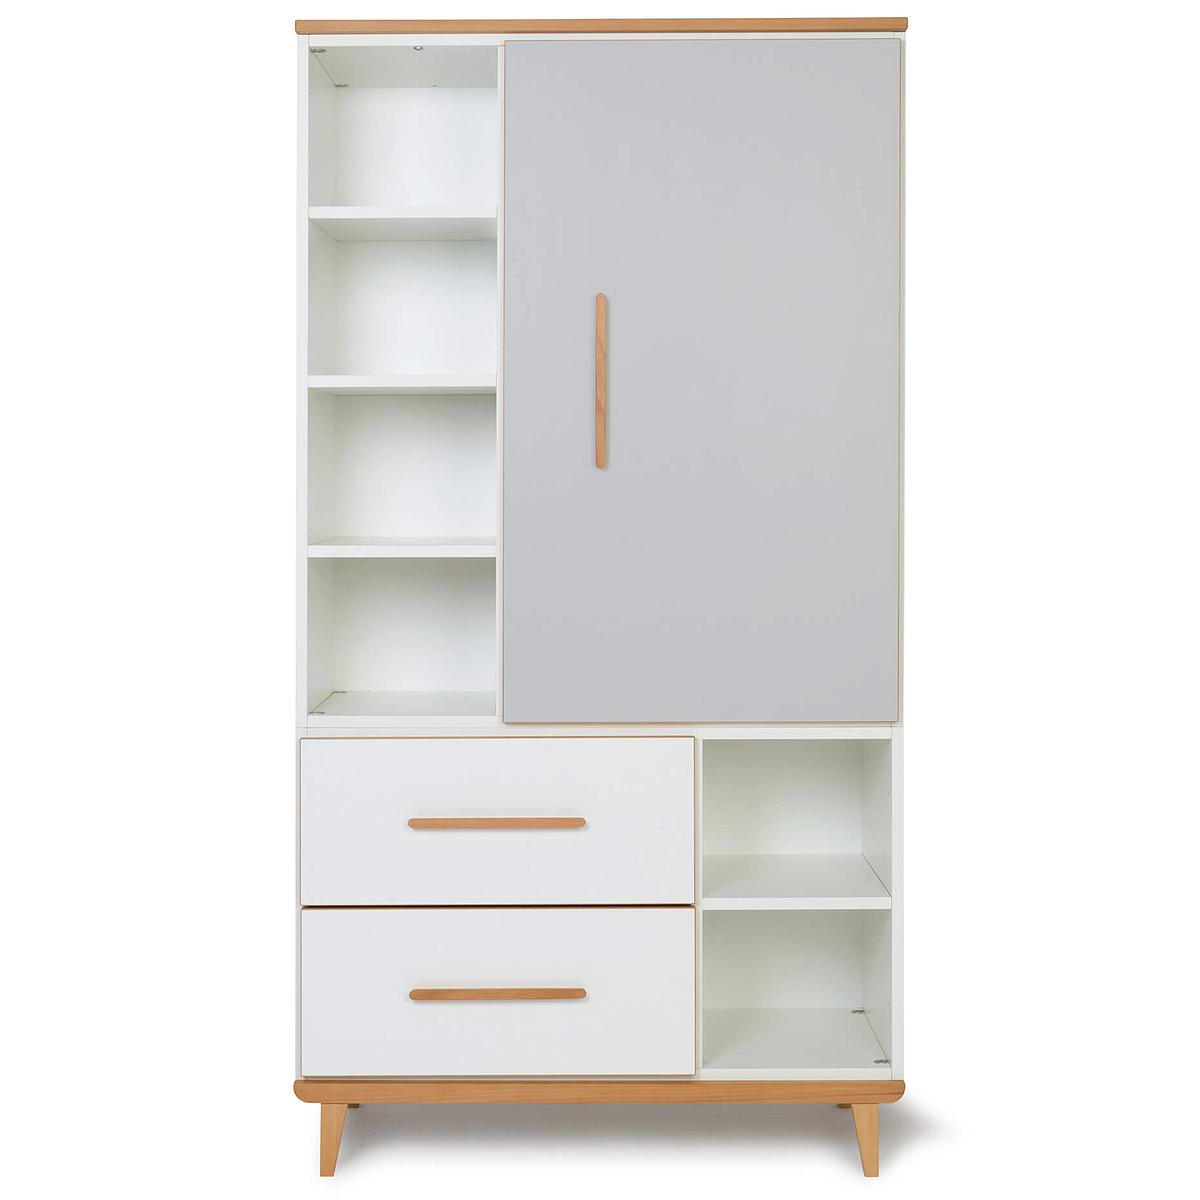 Armoire 173cm 1 porte 2 tiroirs NADO manhattan grey-white